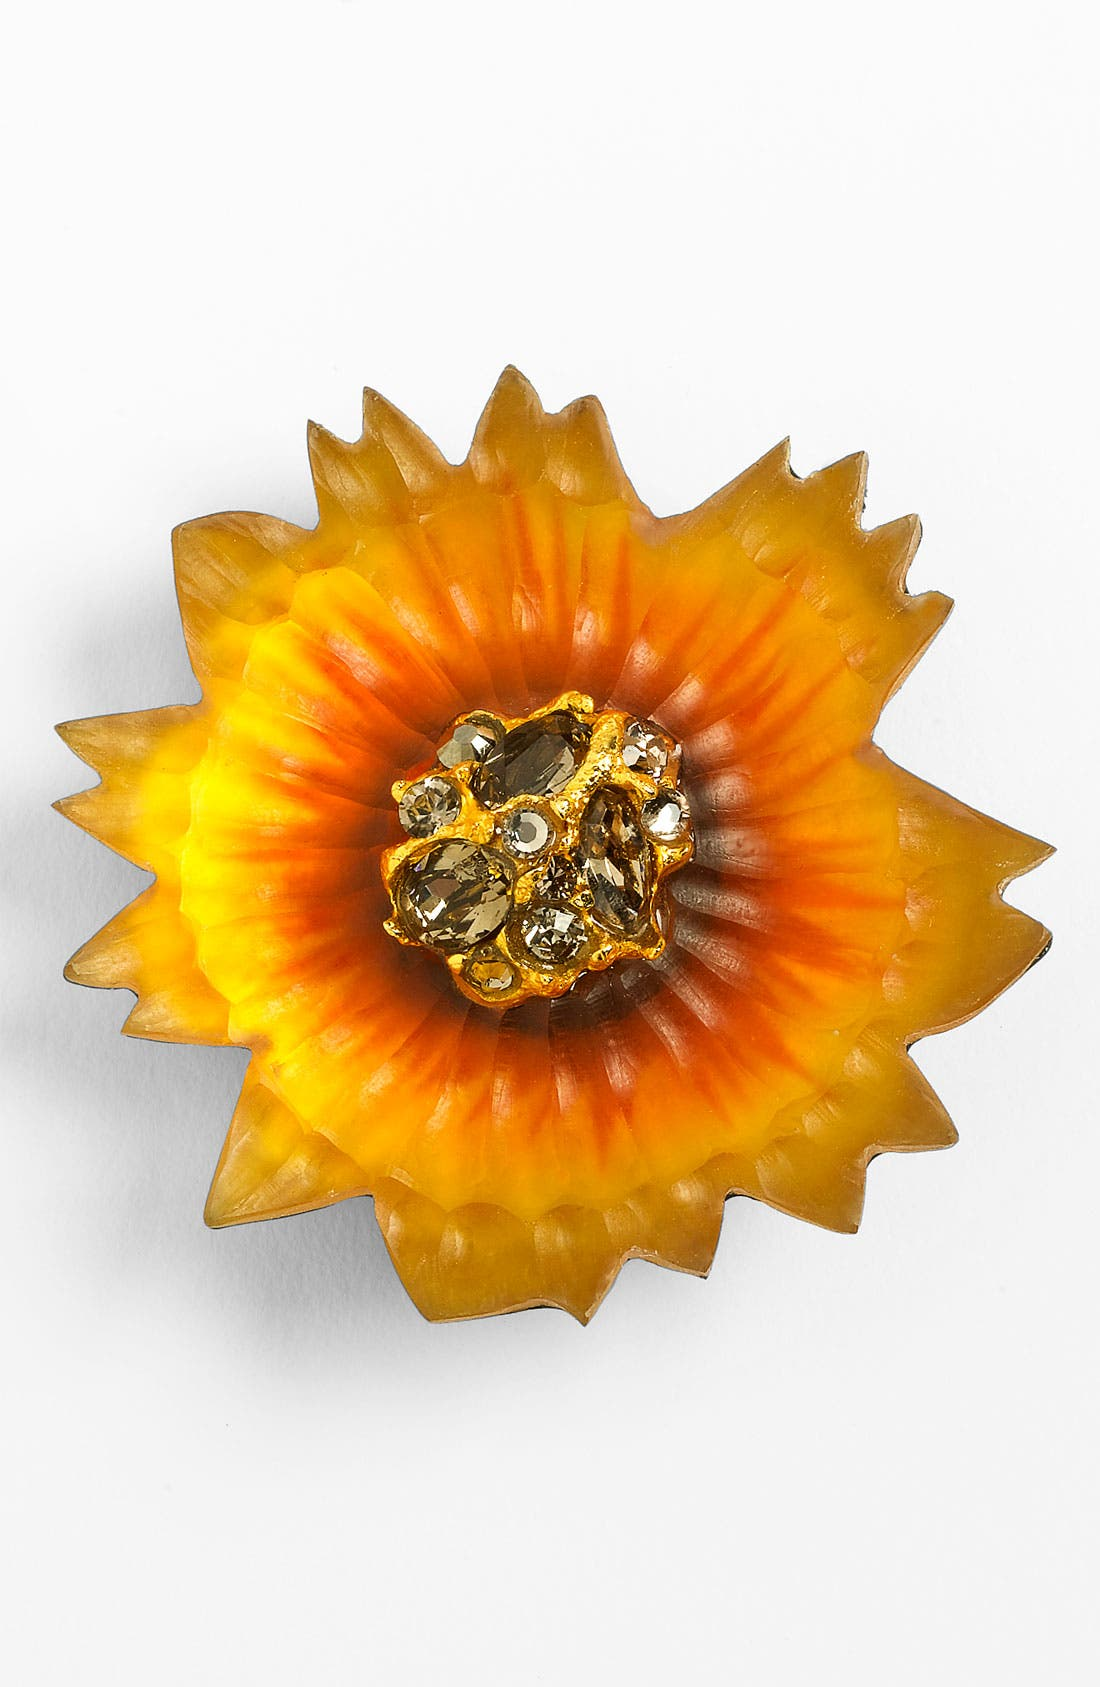 Alternate Image 1 Selected - Alexis Bittar Encrusted Sunflower Pin (Nordstrom Exclusive)